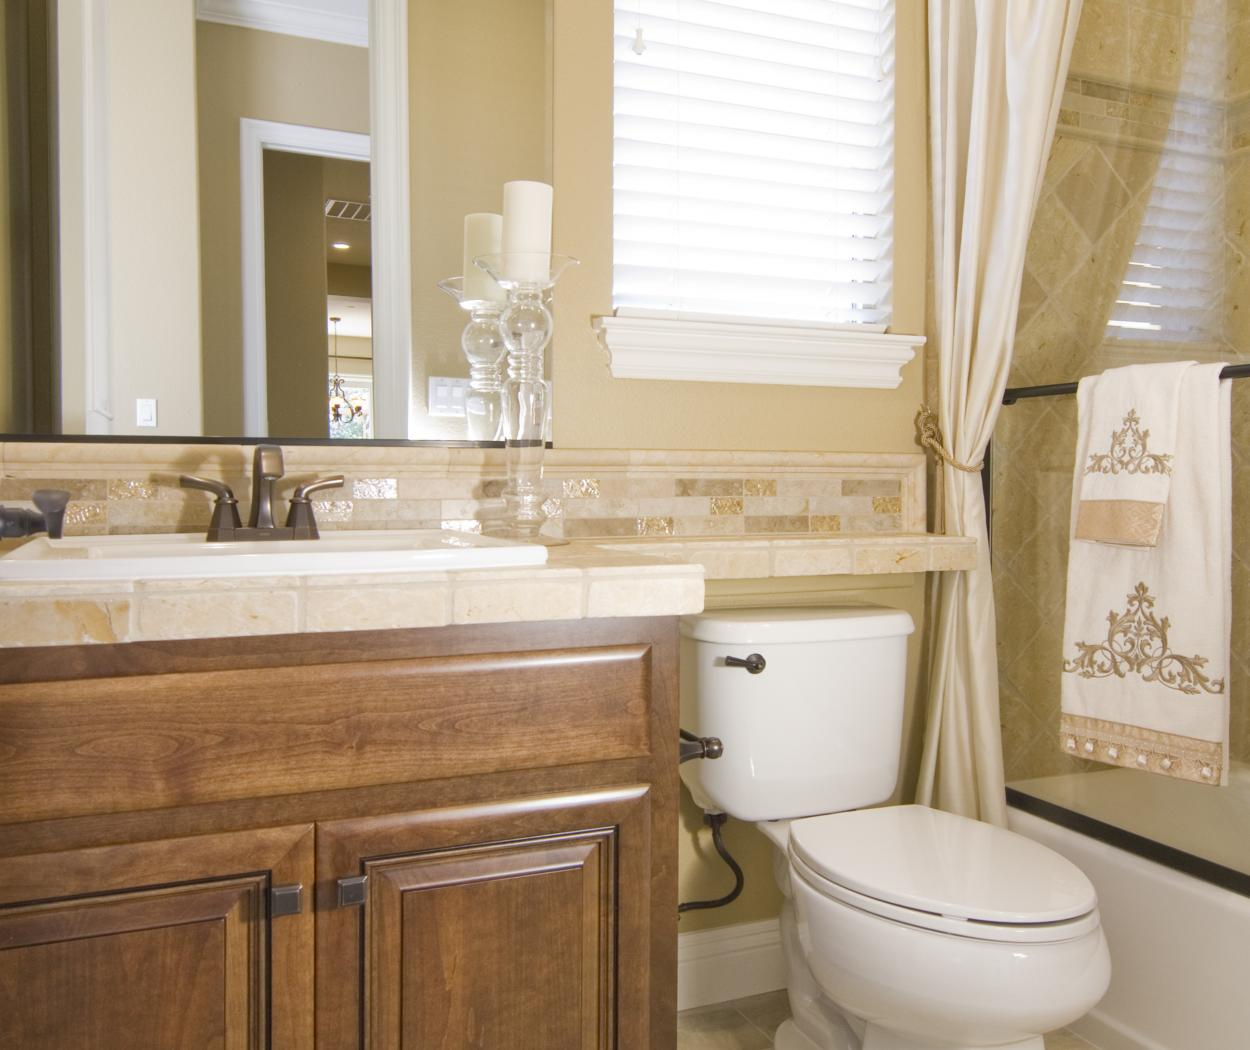 Traditional Stained Bathroom Vanity with a Tile Countertop and Oil Rubbed Bronze Knobs